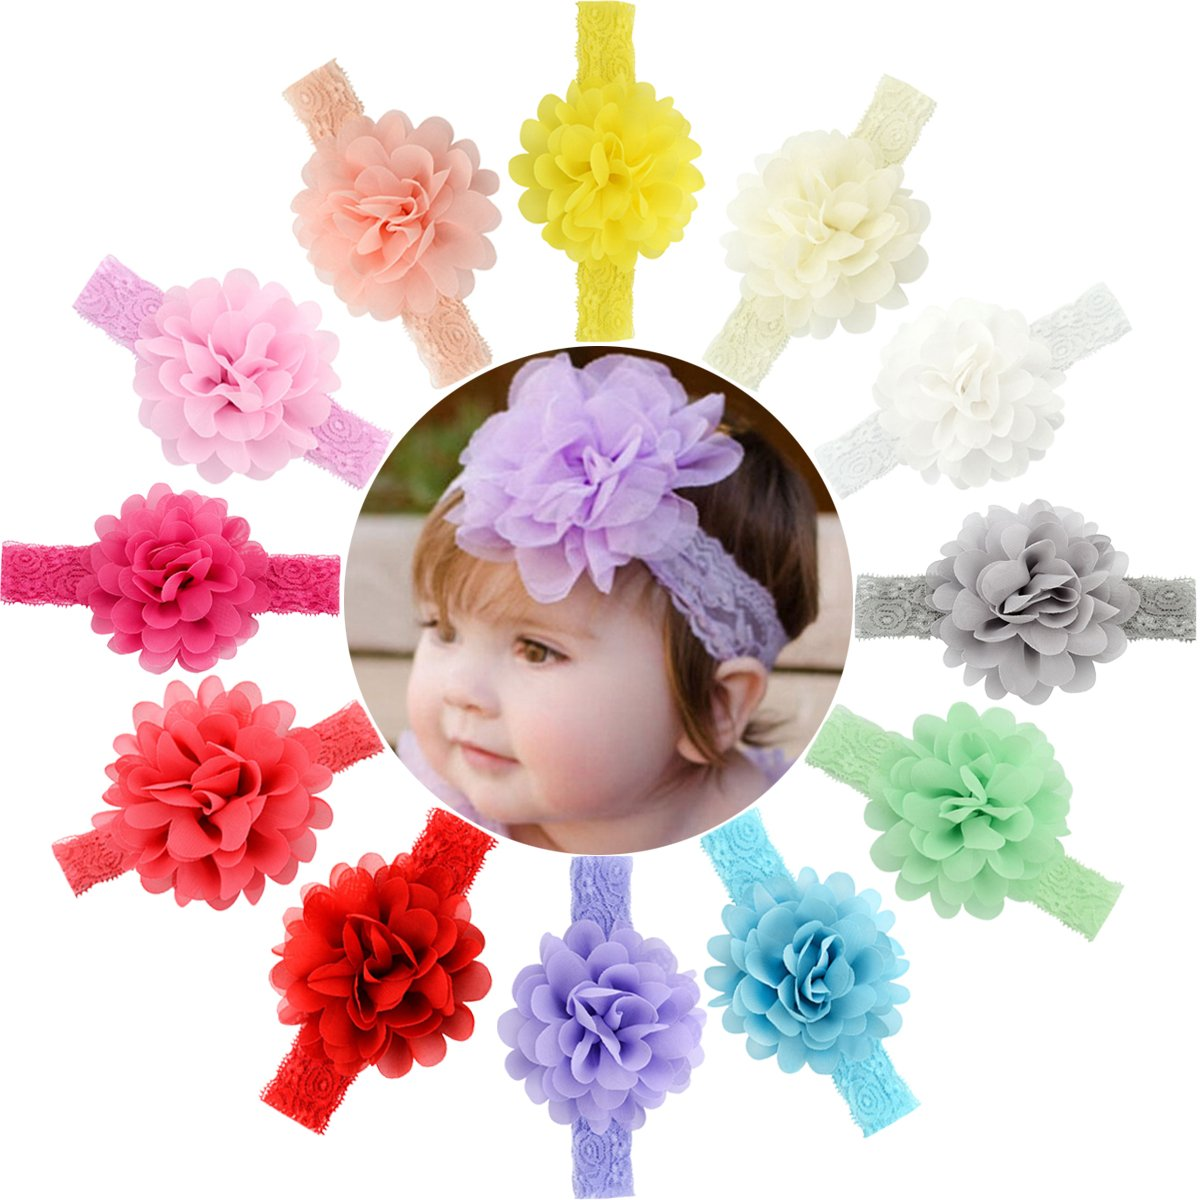 Baby & Toddler Clothing Cute Girl Baby Toddler Infant Flower Headband Hair Bow Band Accessories Ivory Durable Service